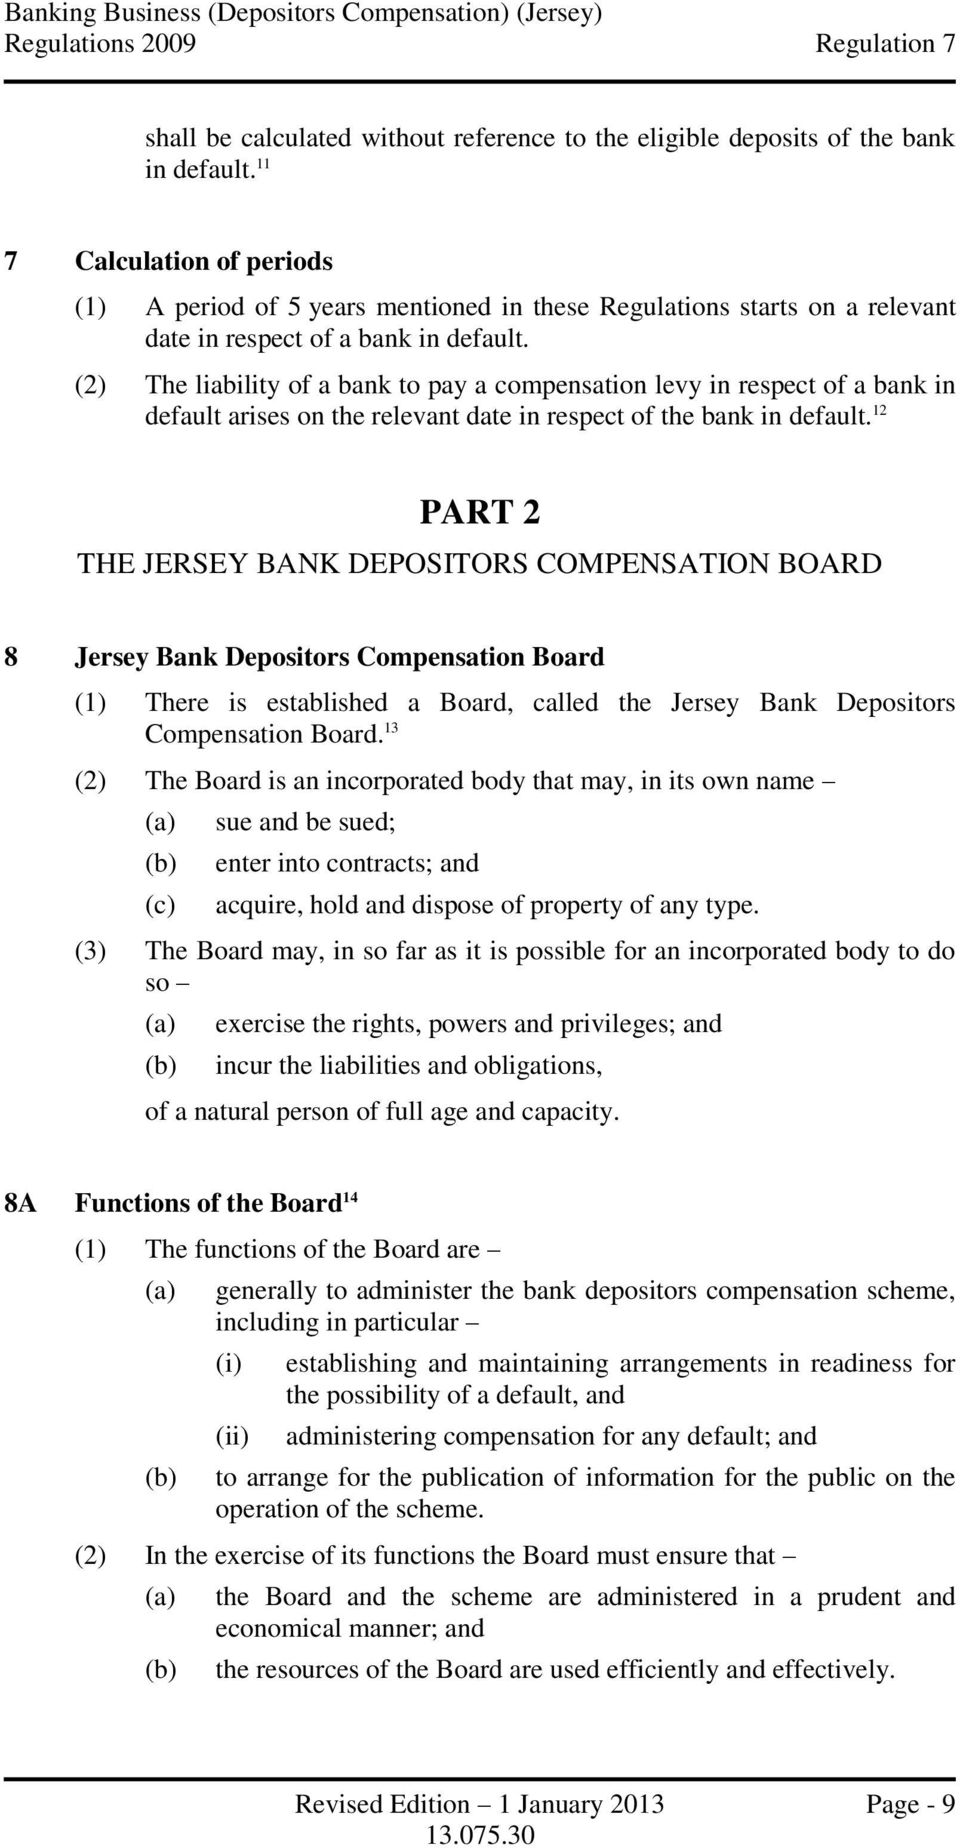 (2) The liability of a bank to pay a compensation levy in respect of a bank in default arises on the relevant date in respect of the bank in default.